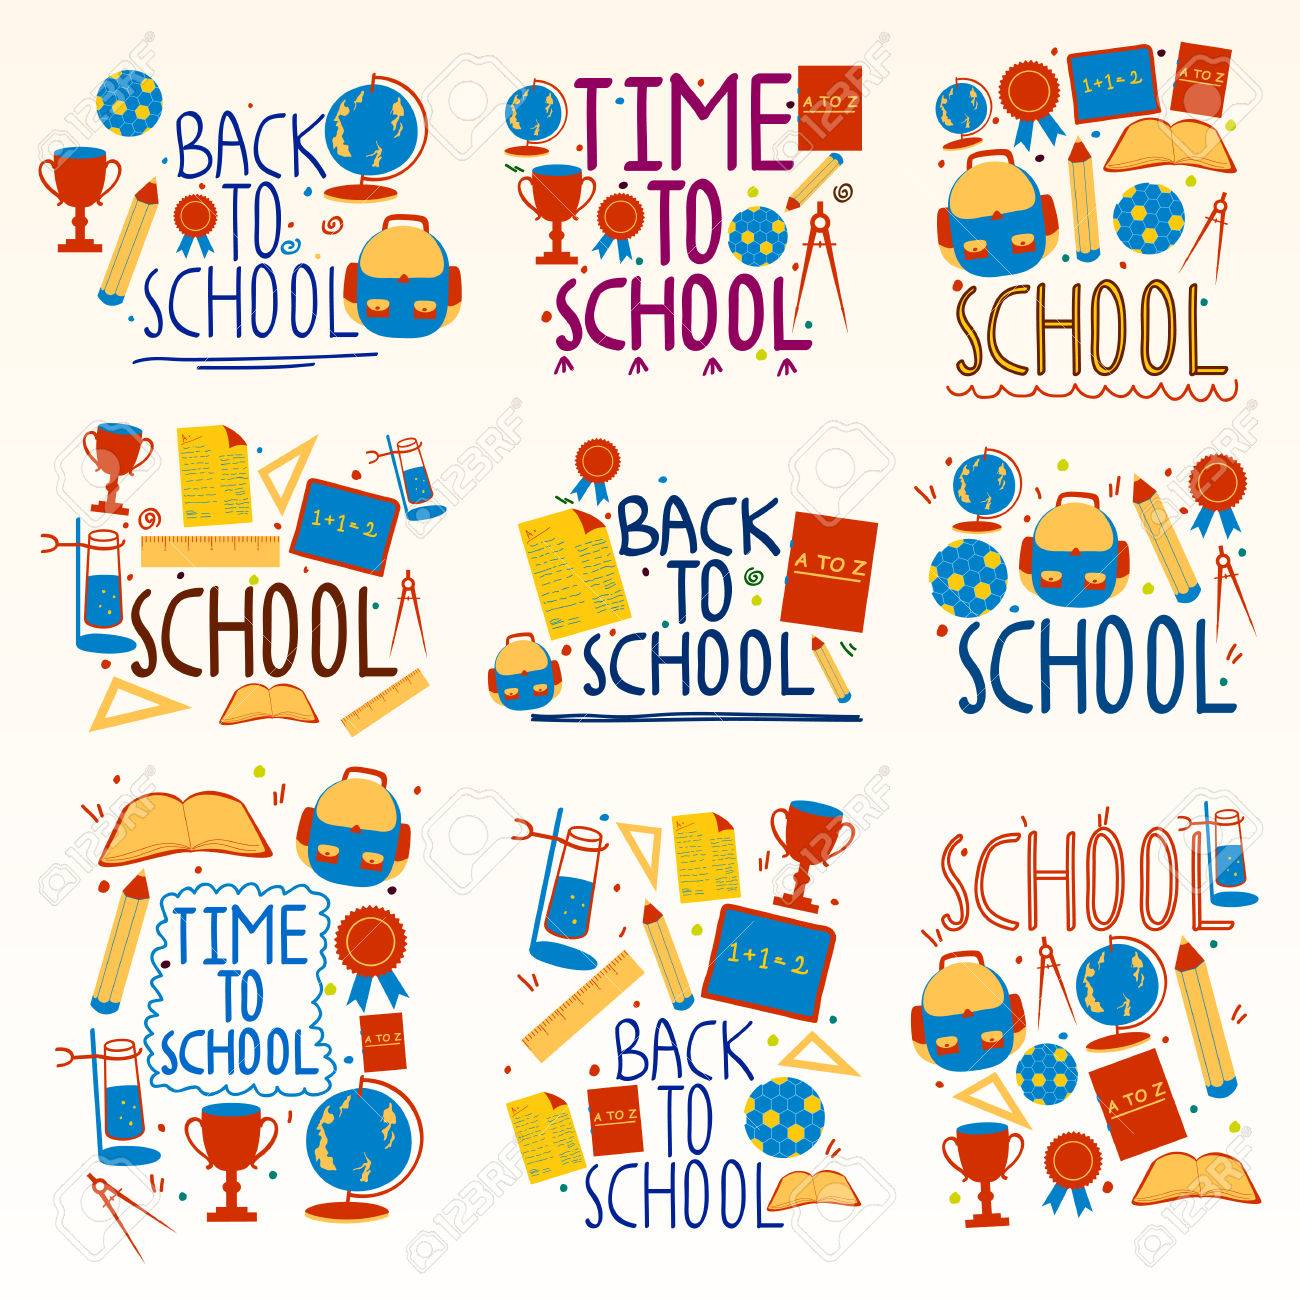 Back To School Collage Composition Royalty Free Cliparts Vectors